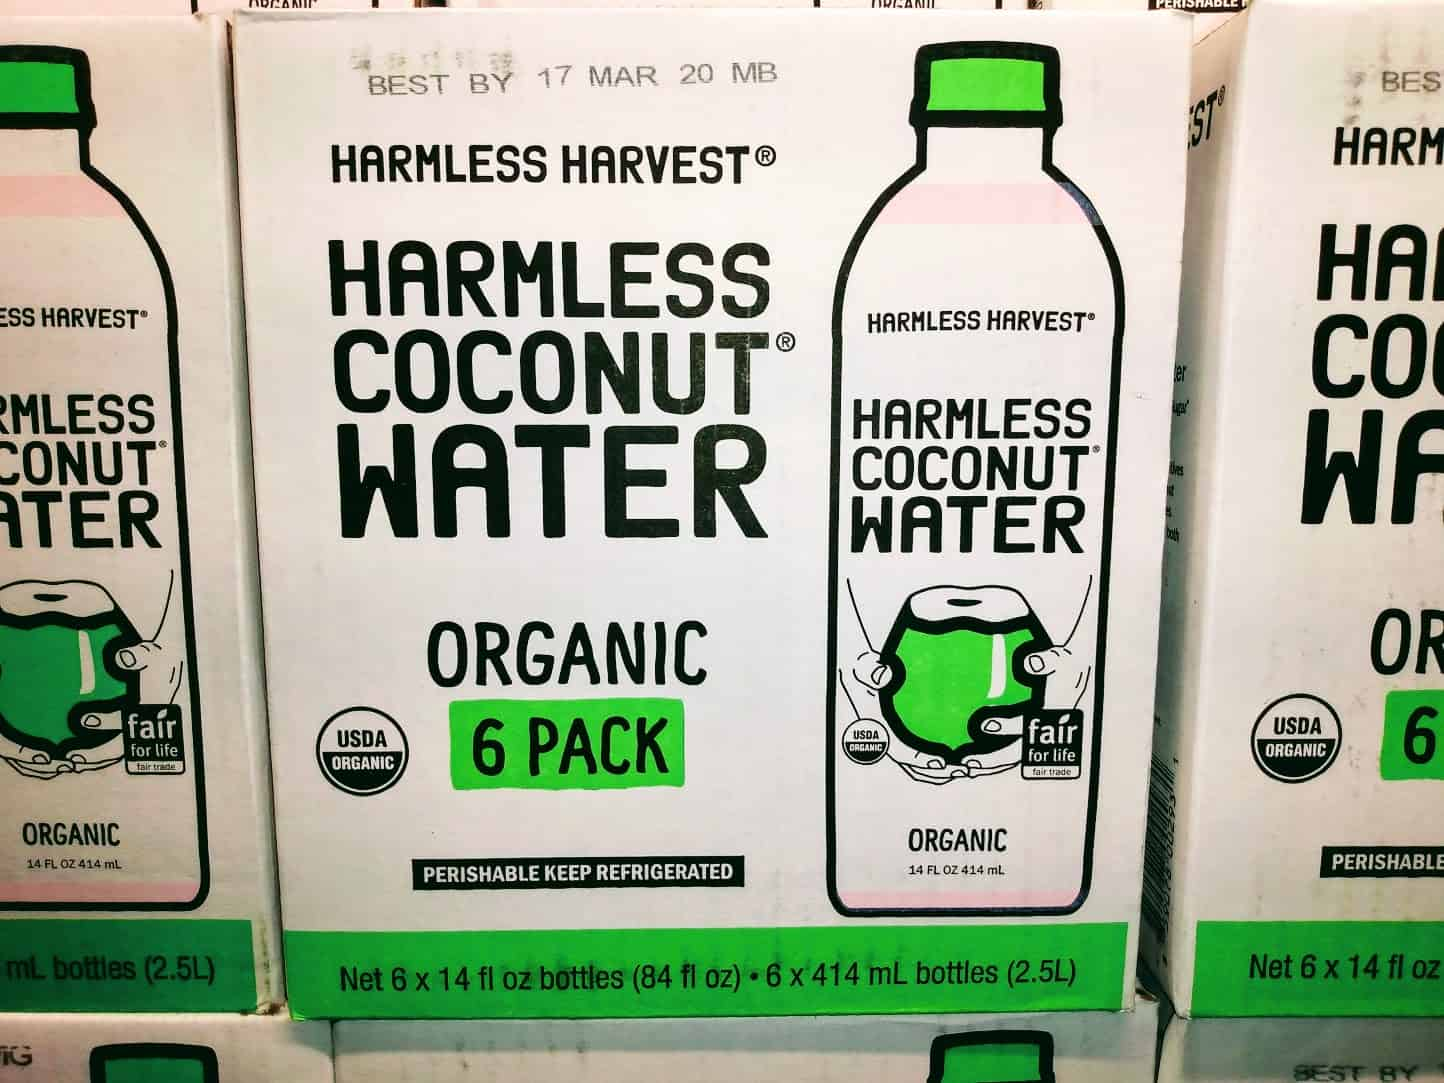 Harmless Coconut Water - What a name